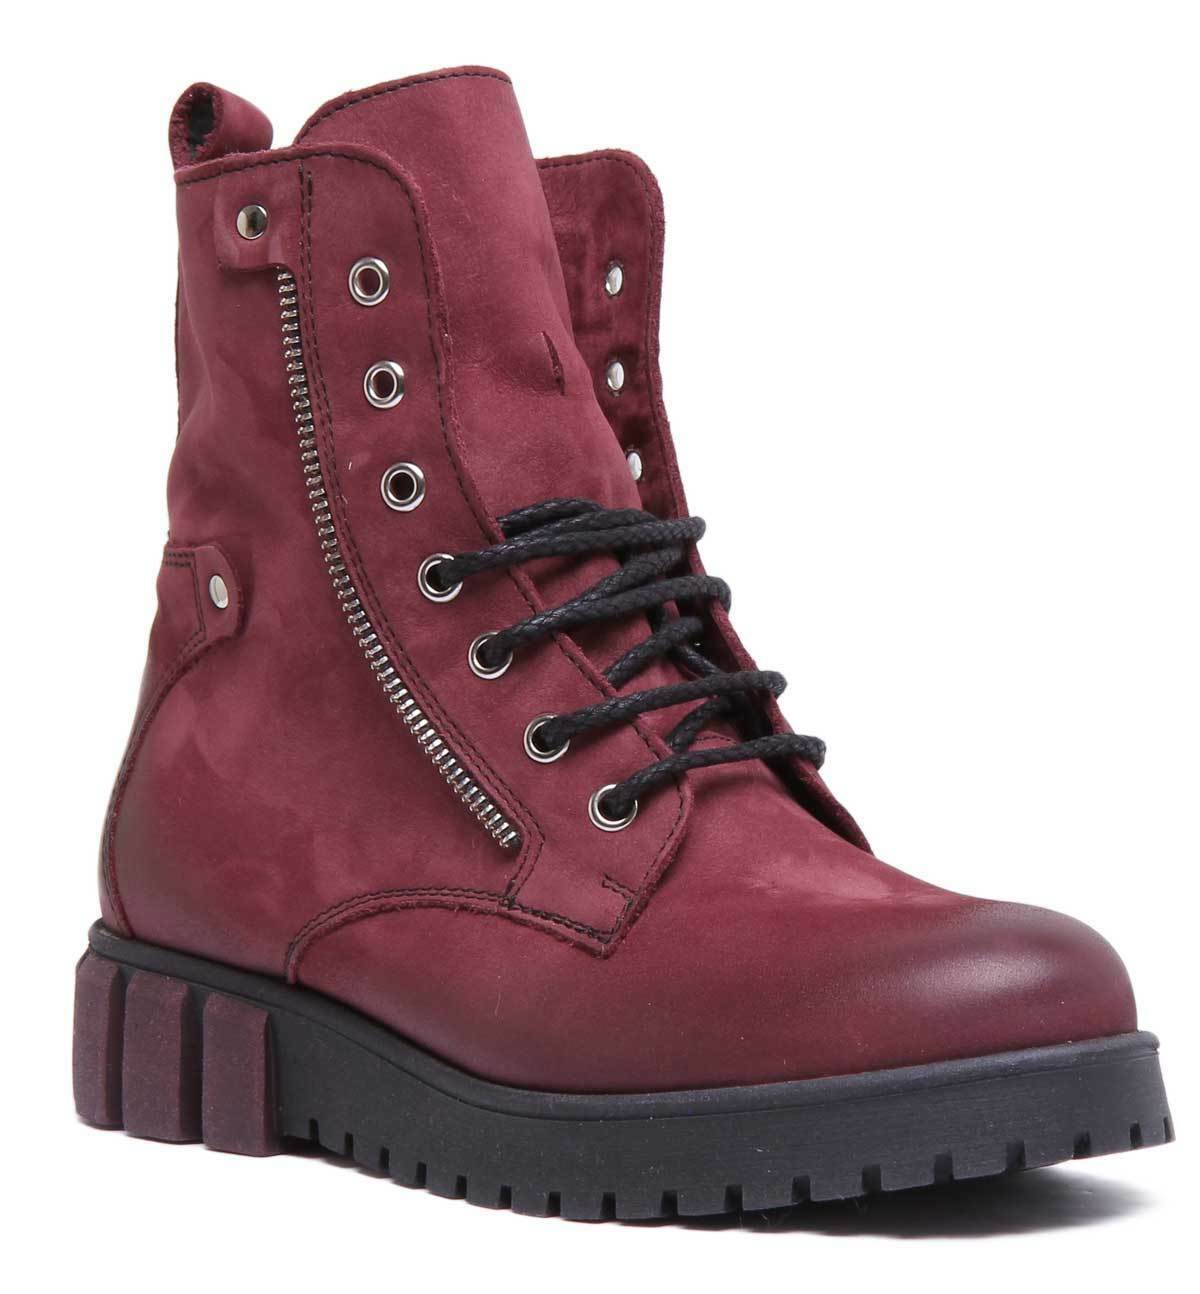 Justin Reece Womens Lace up Side Zip Military Boot Maroon Leather Size UK 3 - 8